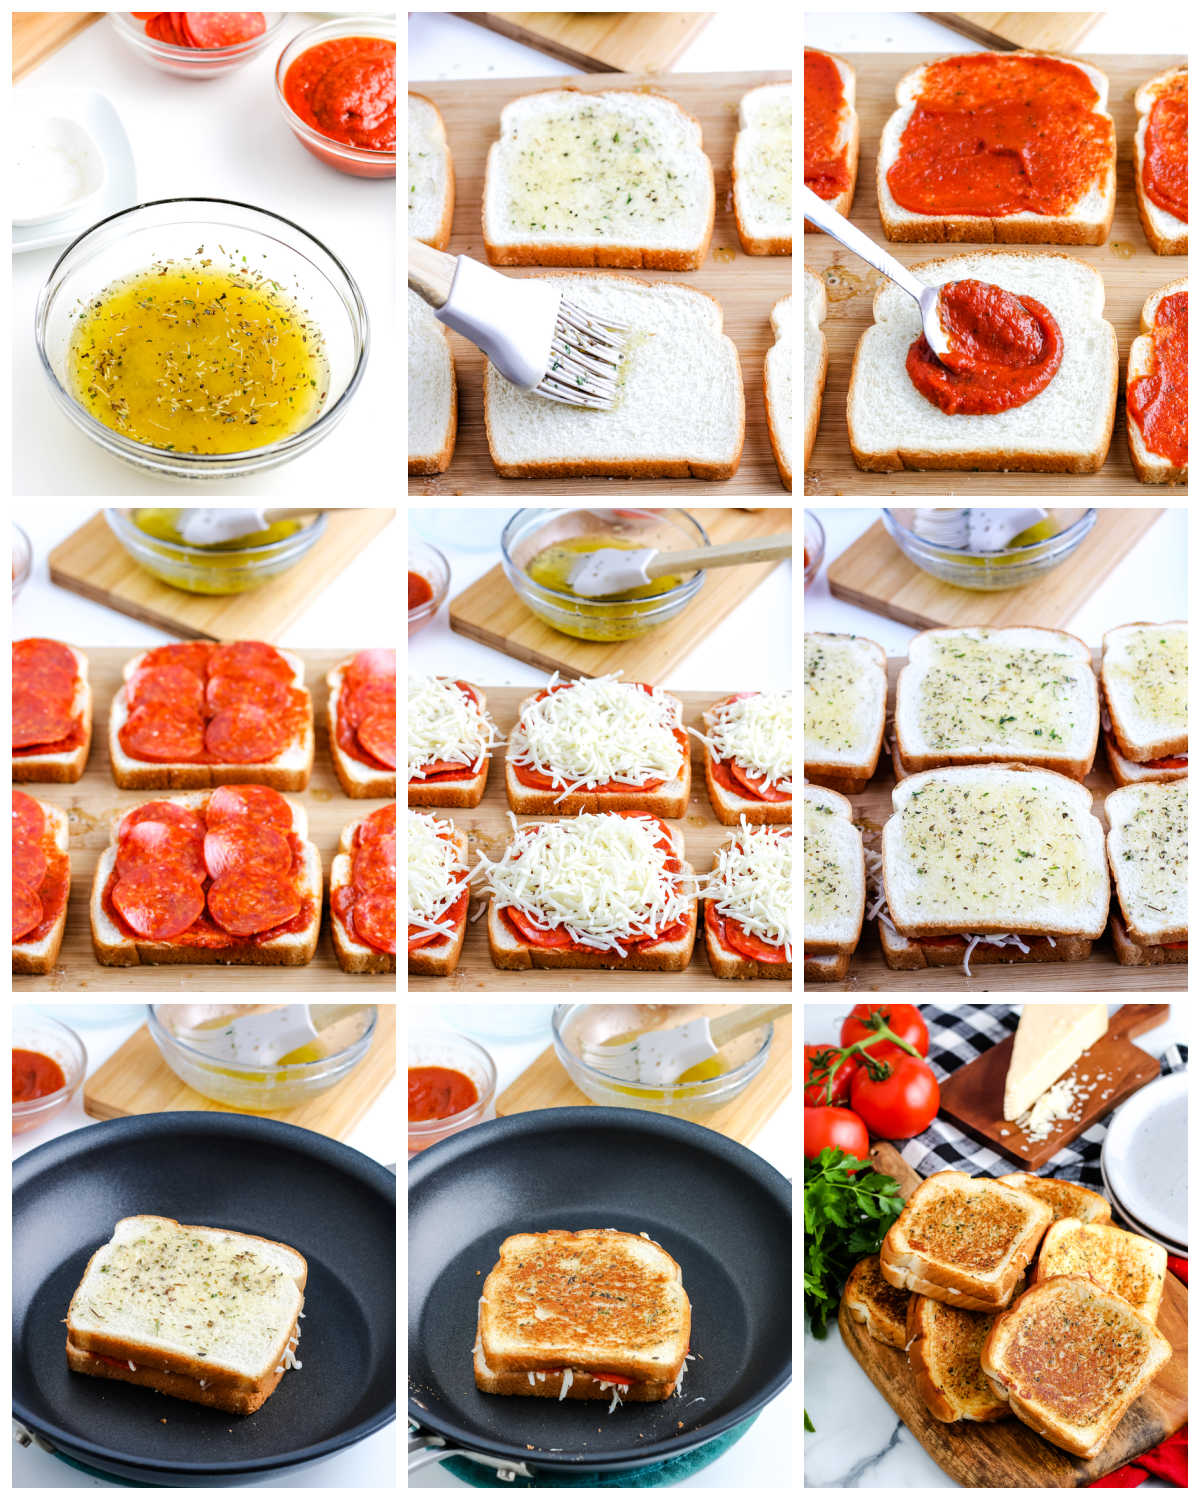 A picture collage of how to make a Pizza Grilled Cheese sandwich.